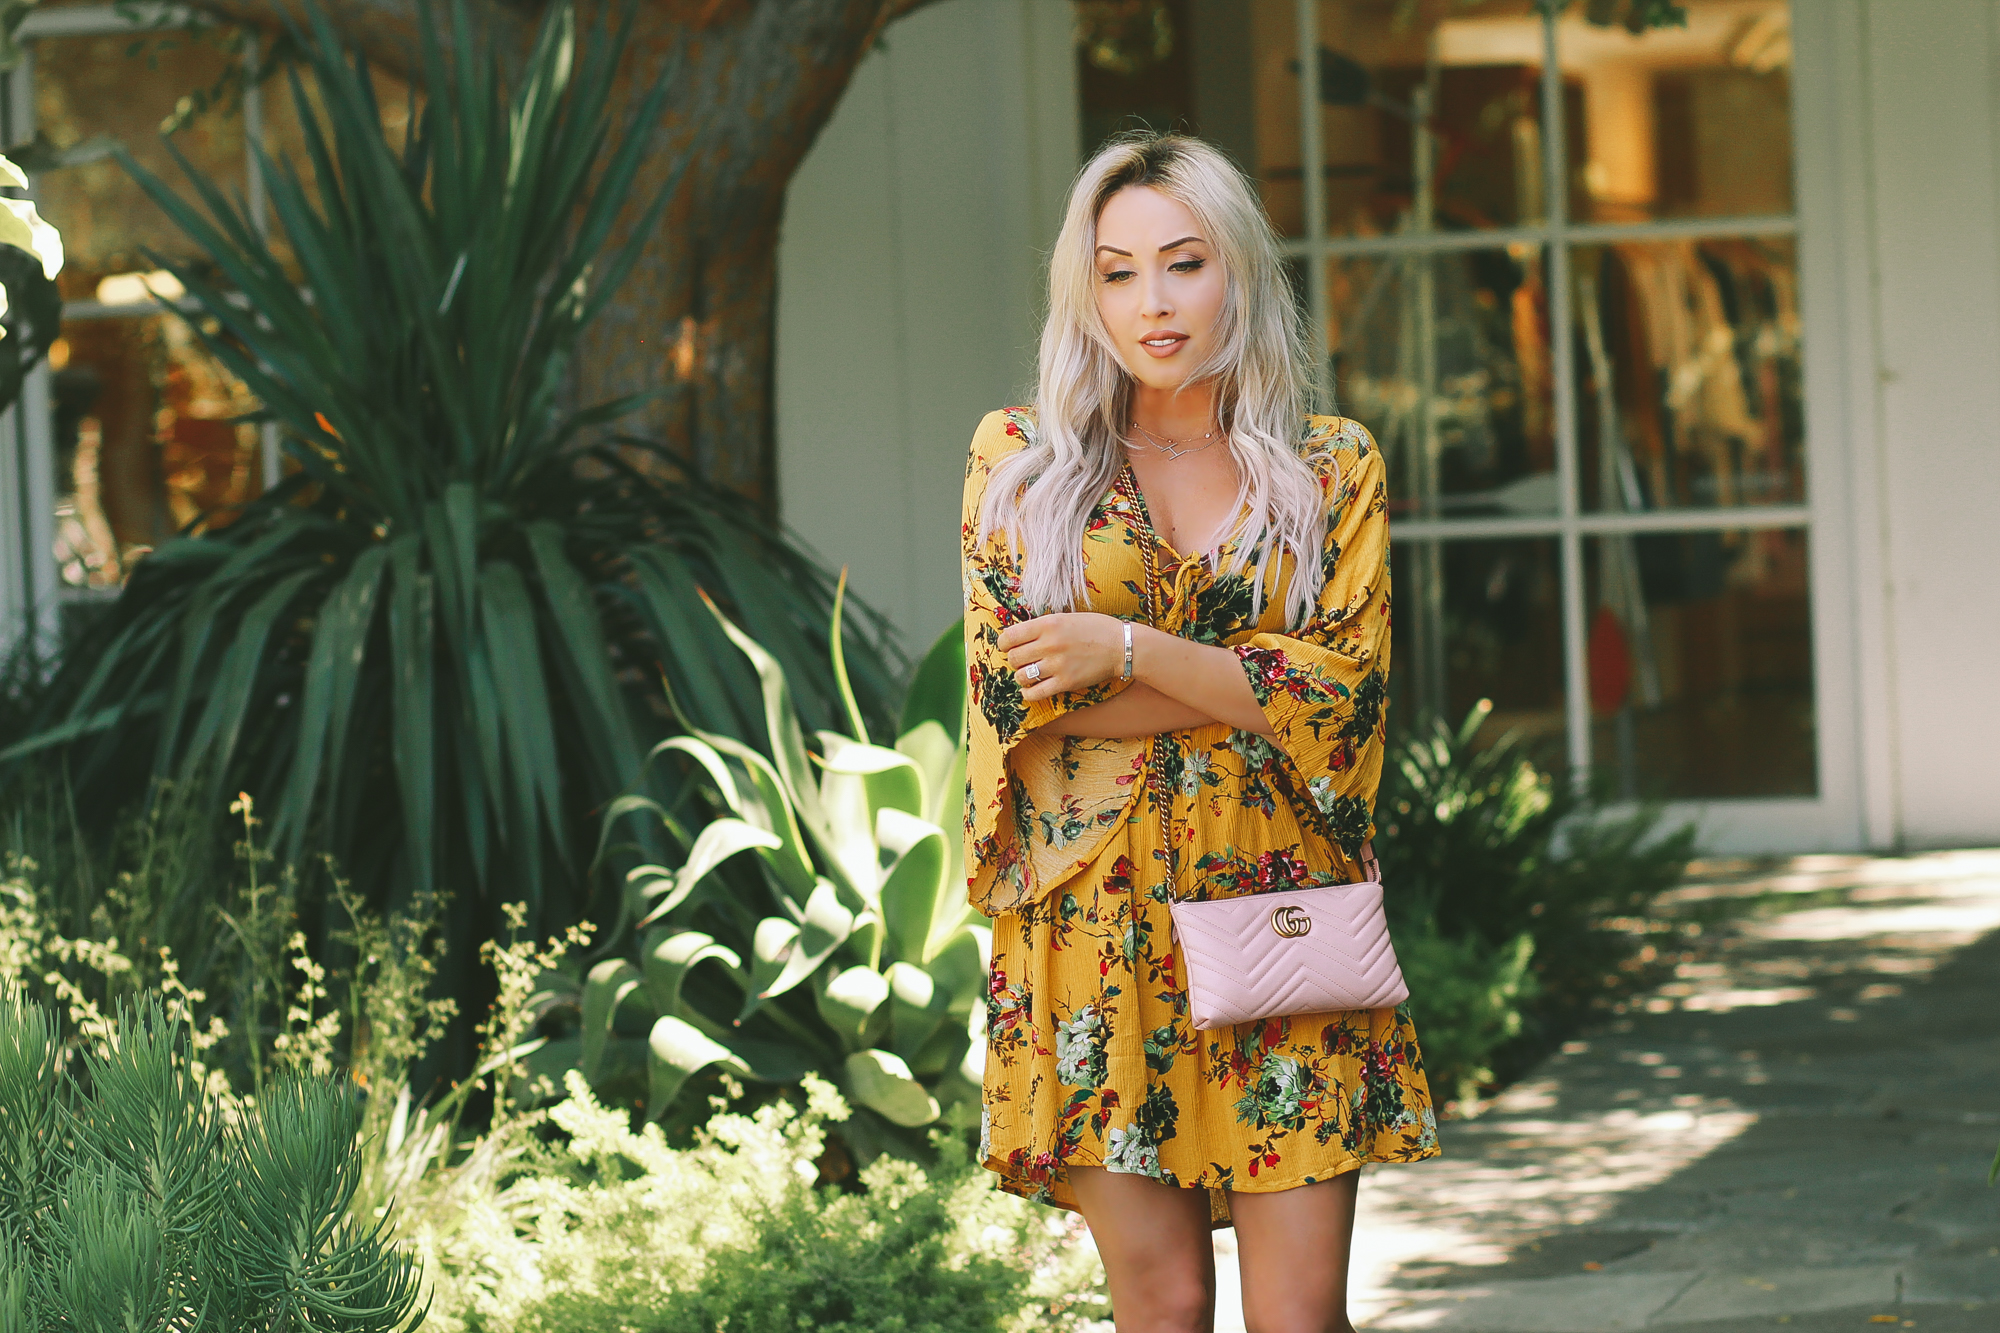 Blondie in the City | Mustard Yellow & A Pink Gucci Bag